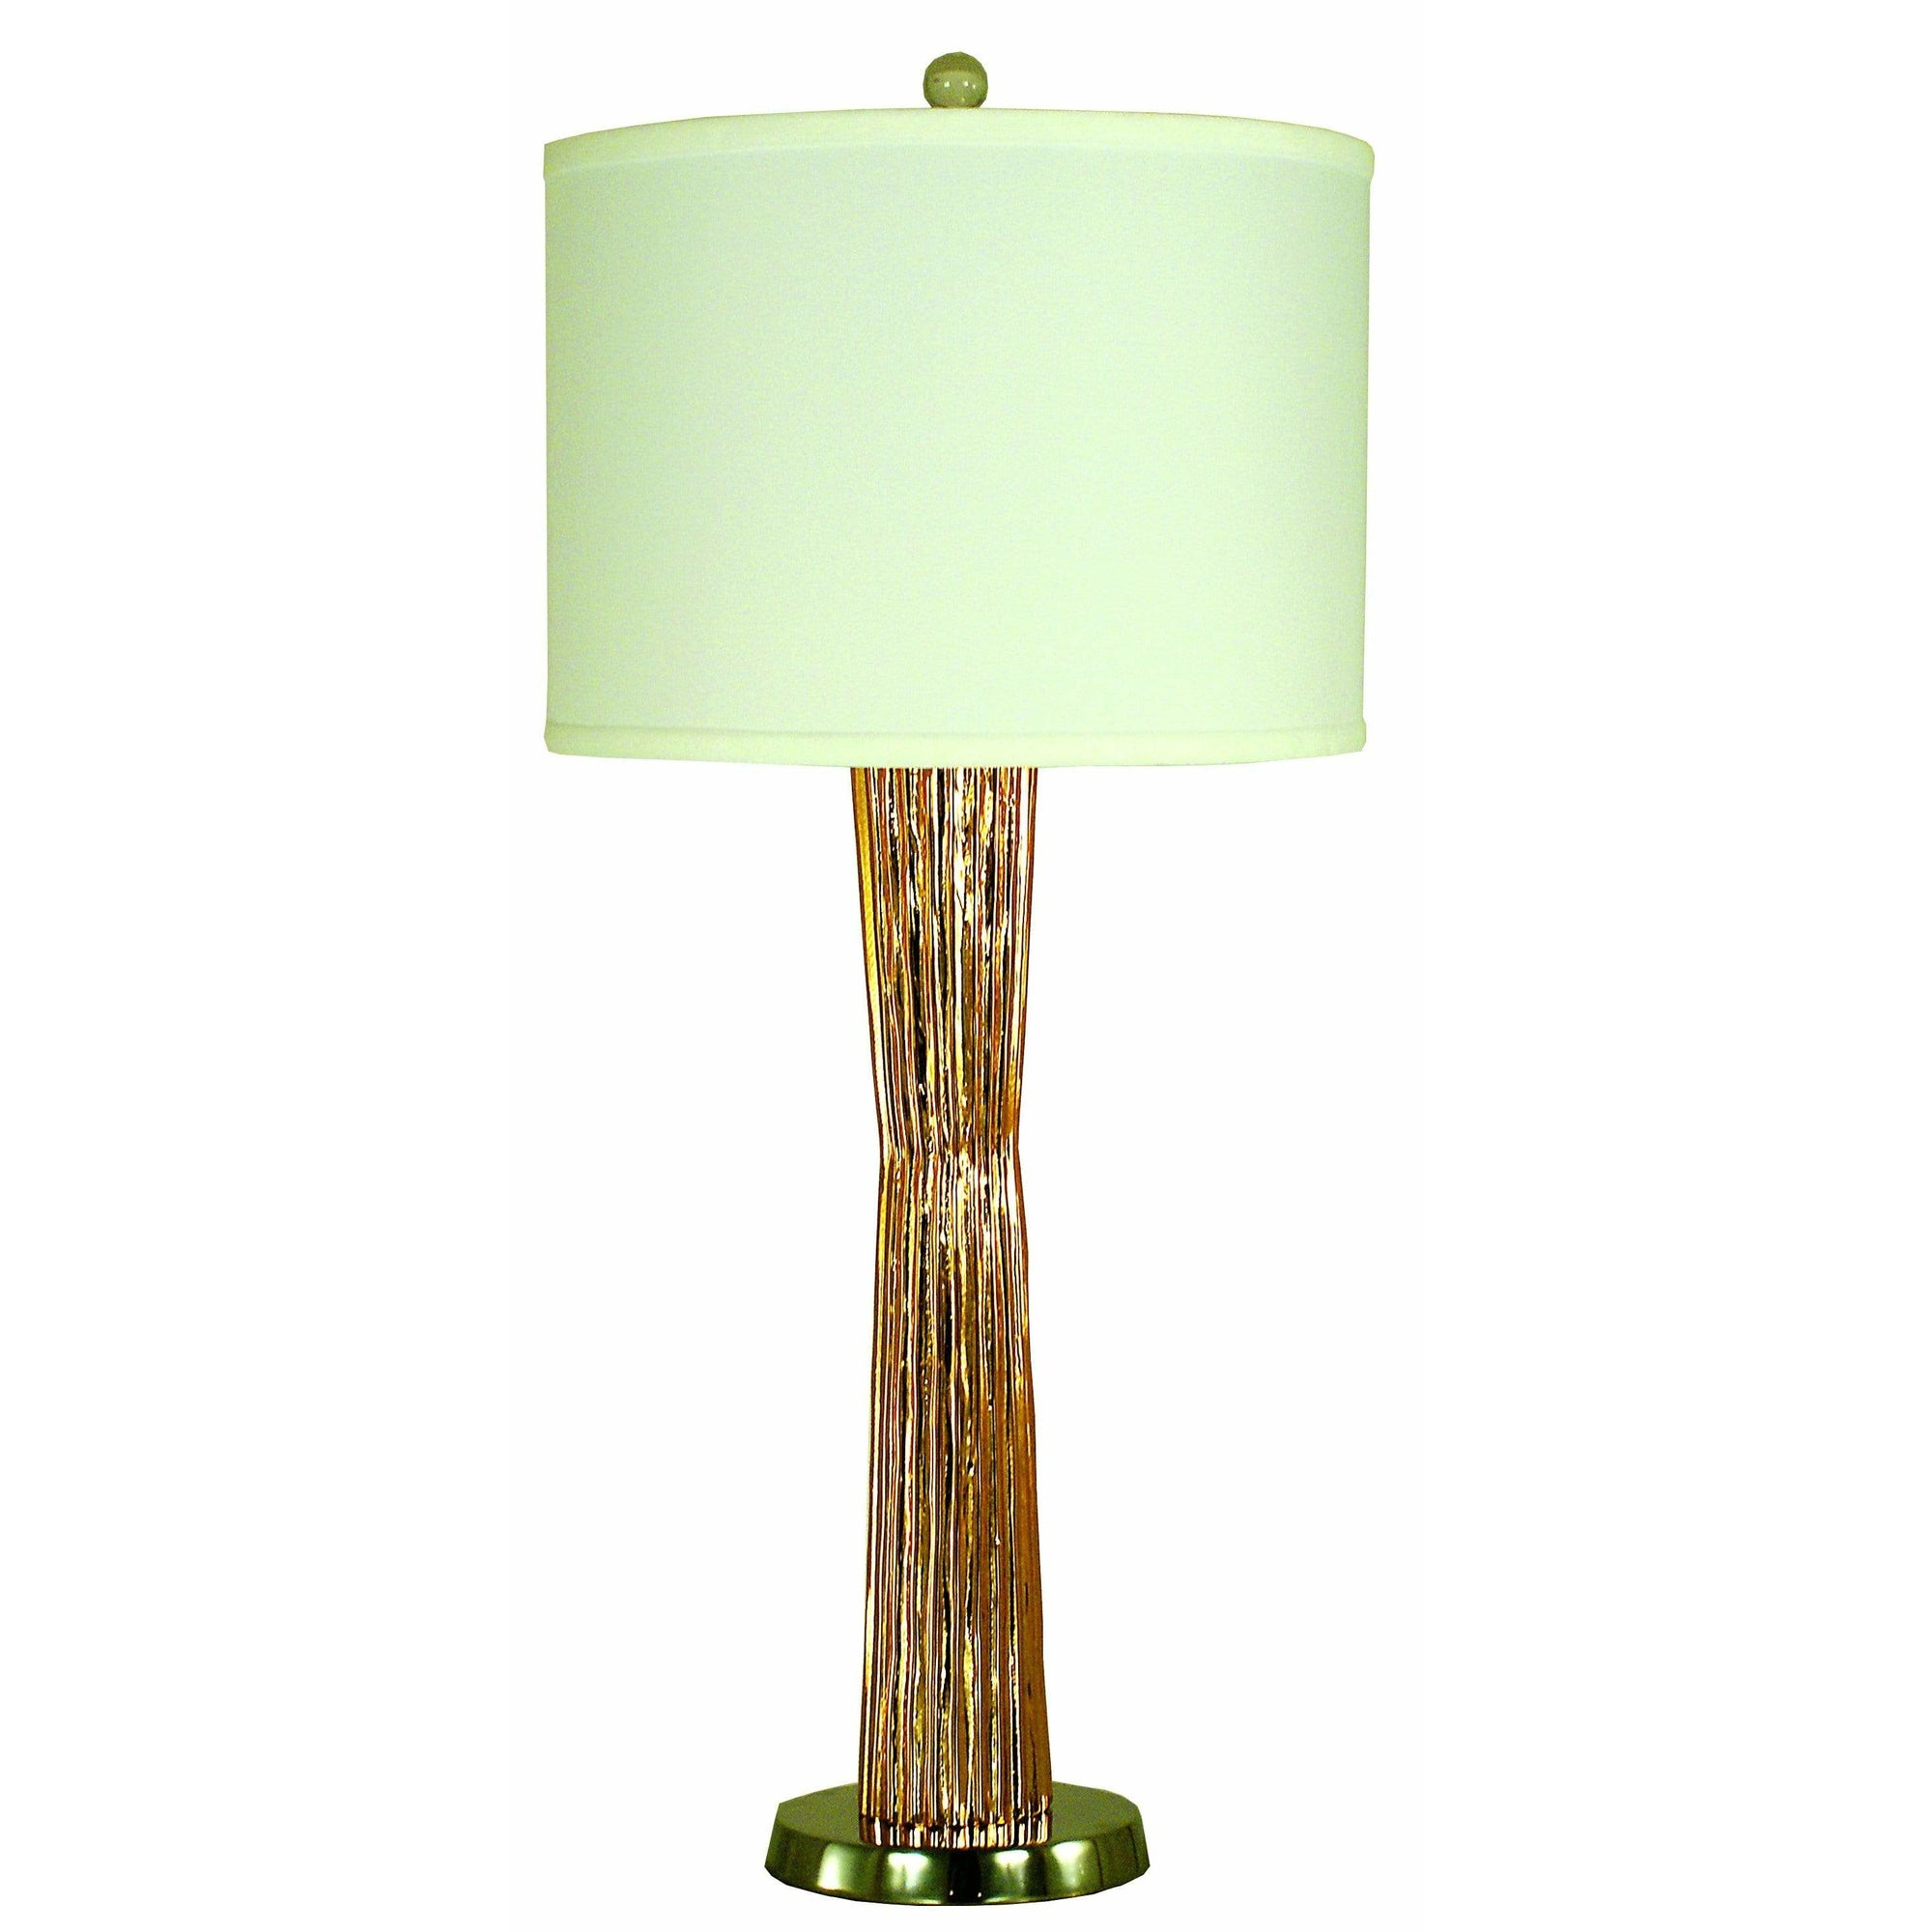 Thumprints Table Lamps Copper with Polished Nickel / White Silk Hardback Olympia Table Lamp By Thumprints 1254-ASL-2134